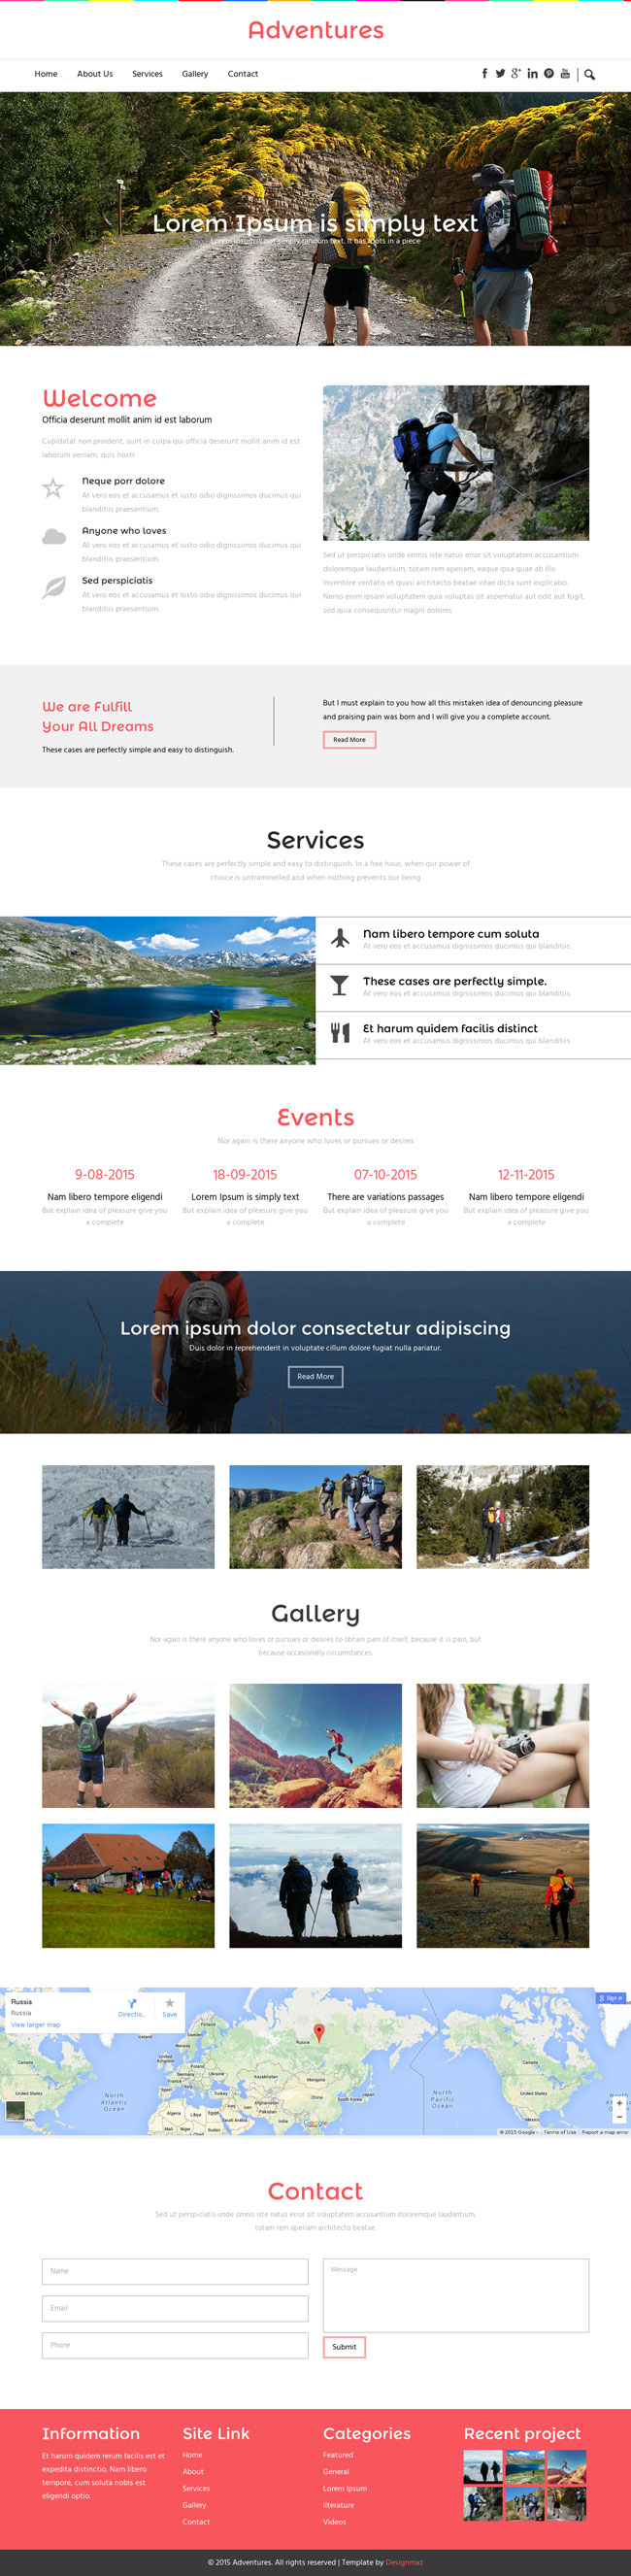 Free Adventure Travel HTML5 CSS3 Template